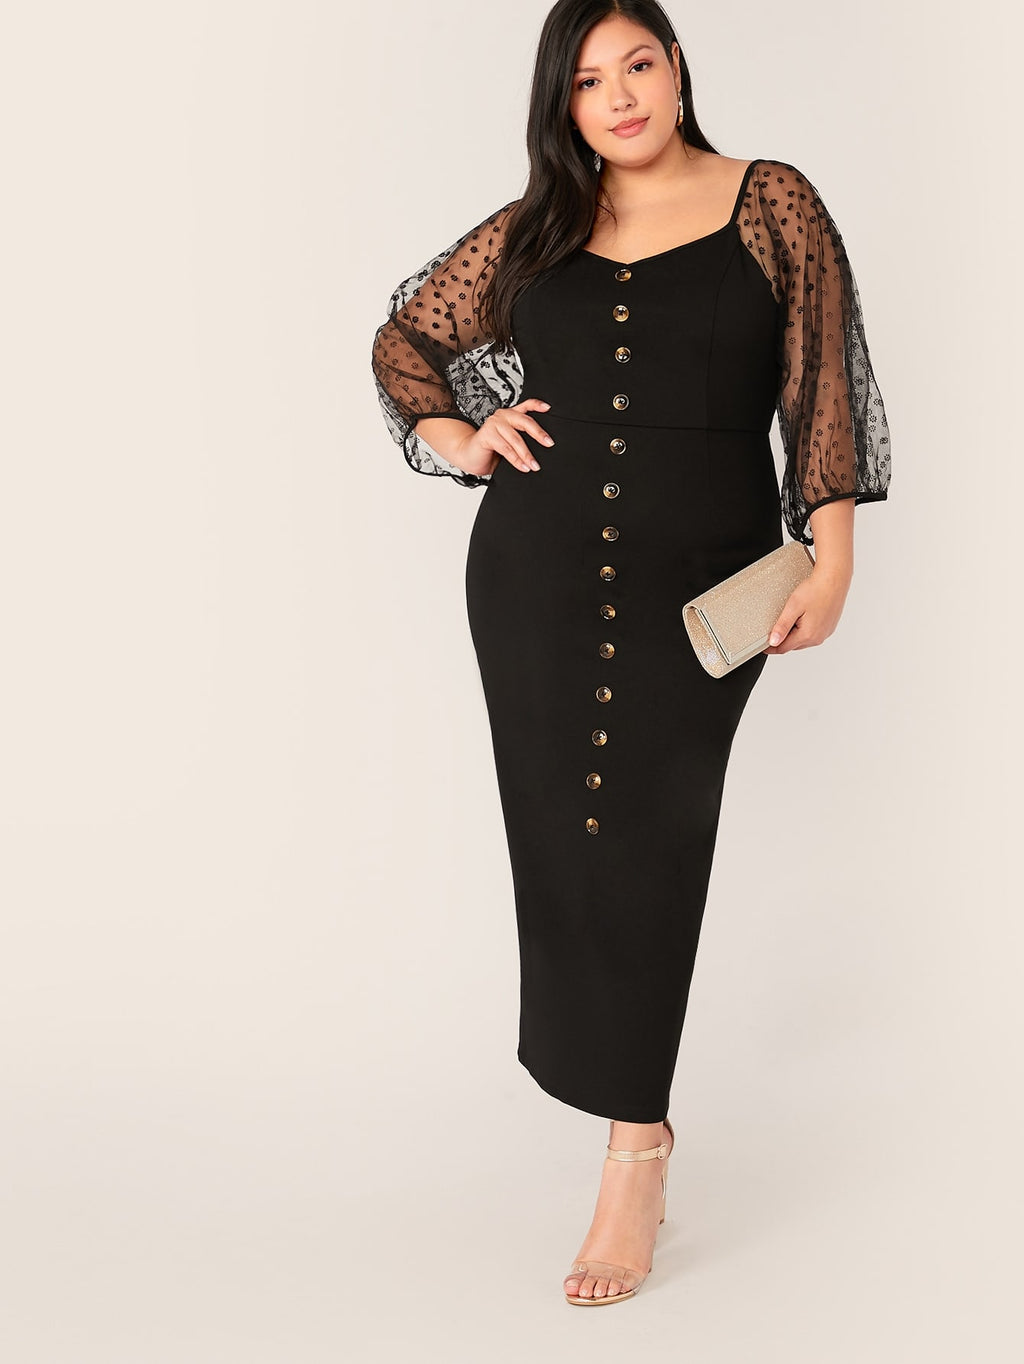 Plus Size Elegant Button Front Mesh Sleeve Dress